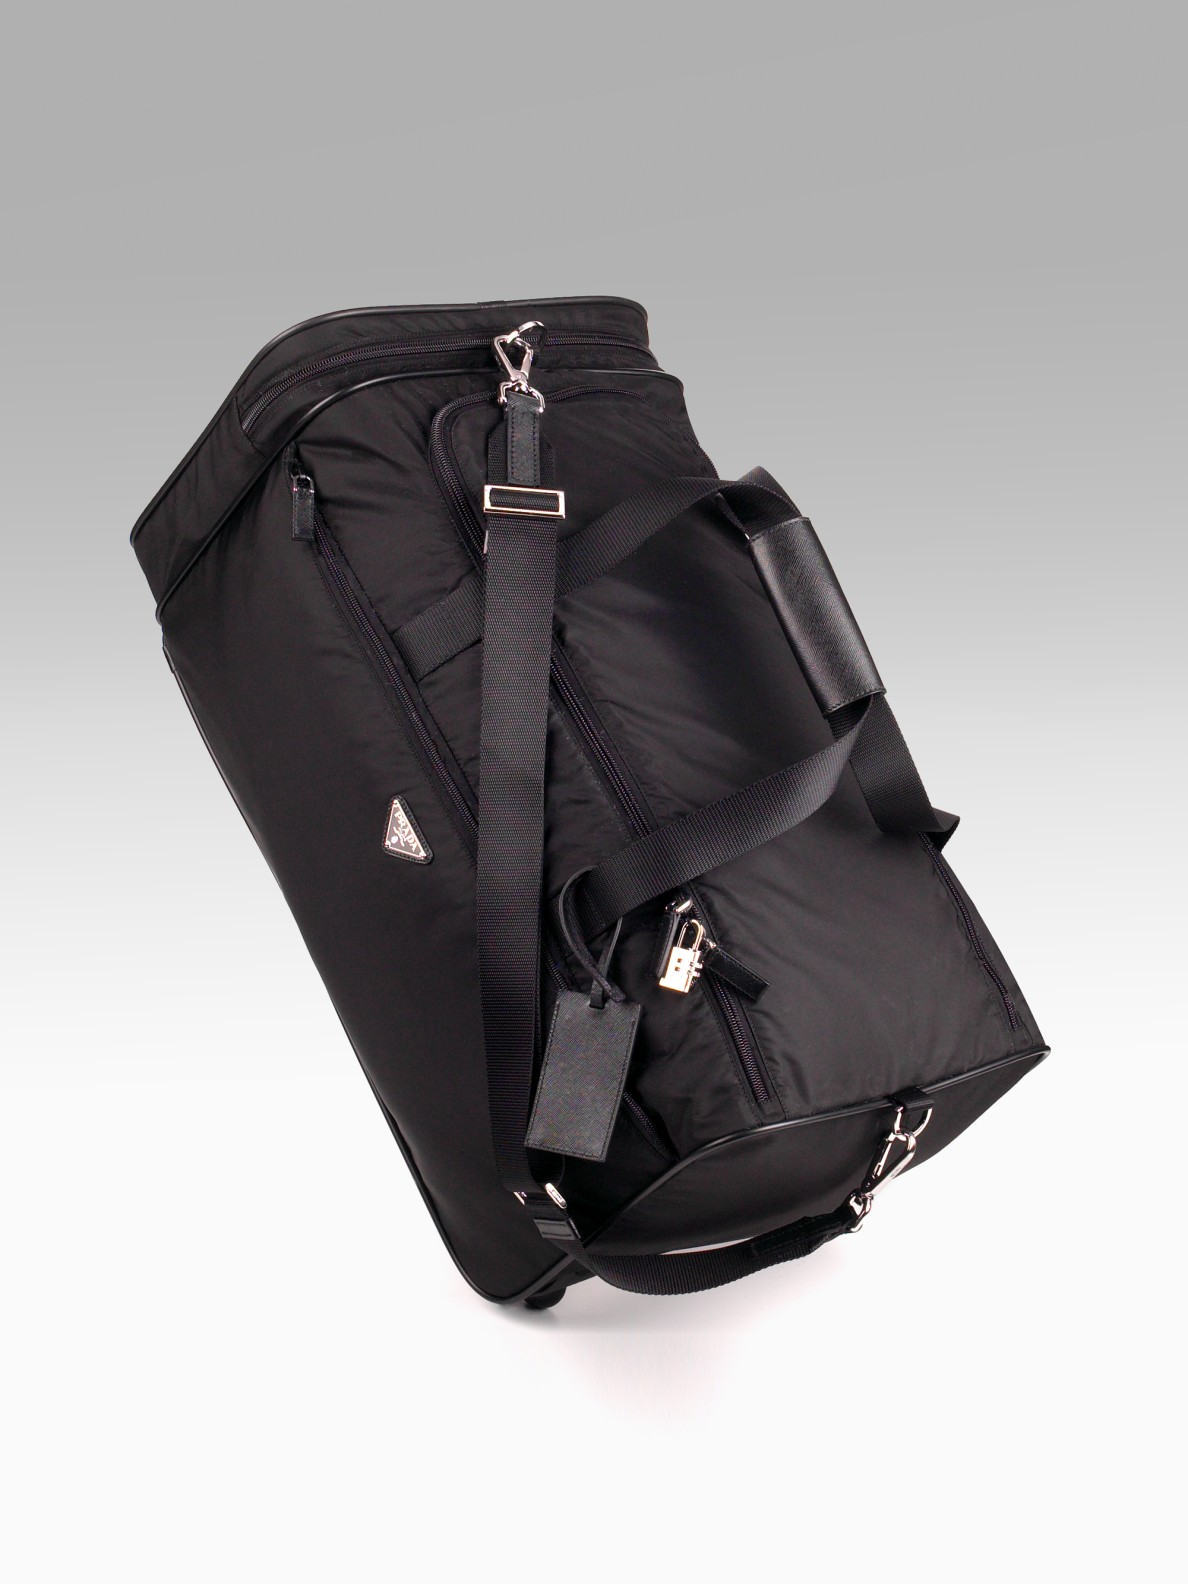 prada trolley black